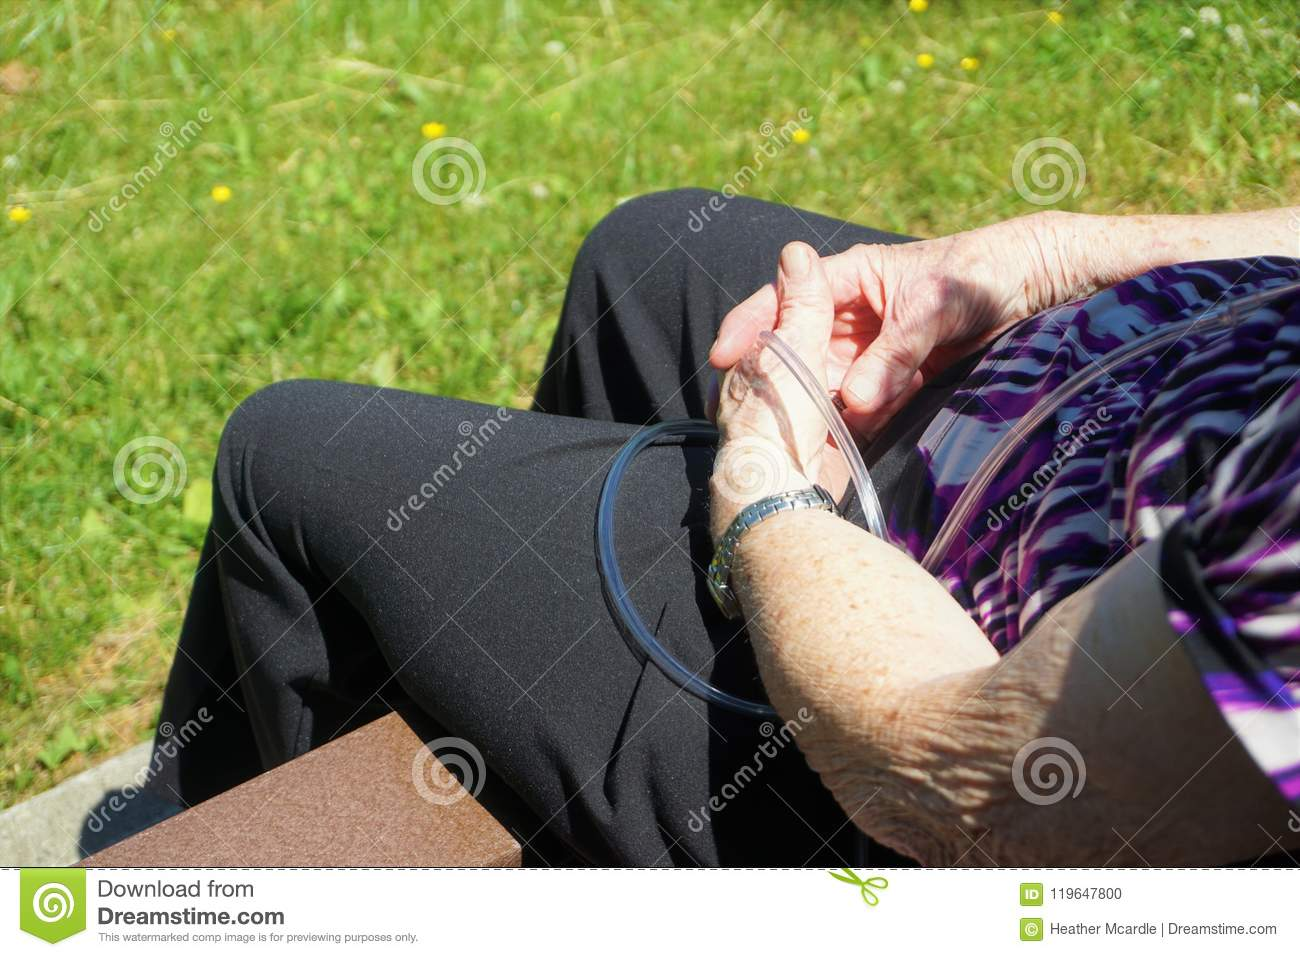 Elderly Female Rests On A Composite Park Bench Silver Watch Clear Plastic Tubing Transmitting O2 And Black Pants With Green Summer Grass